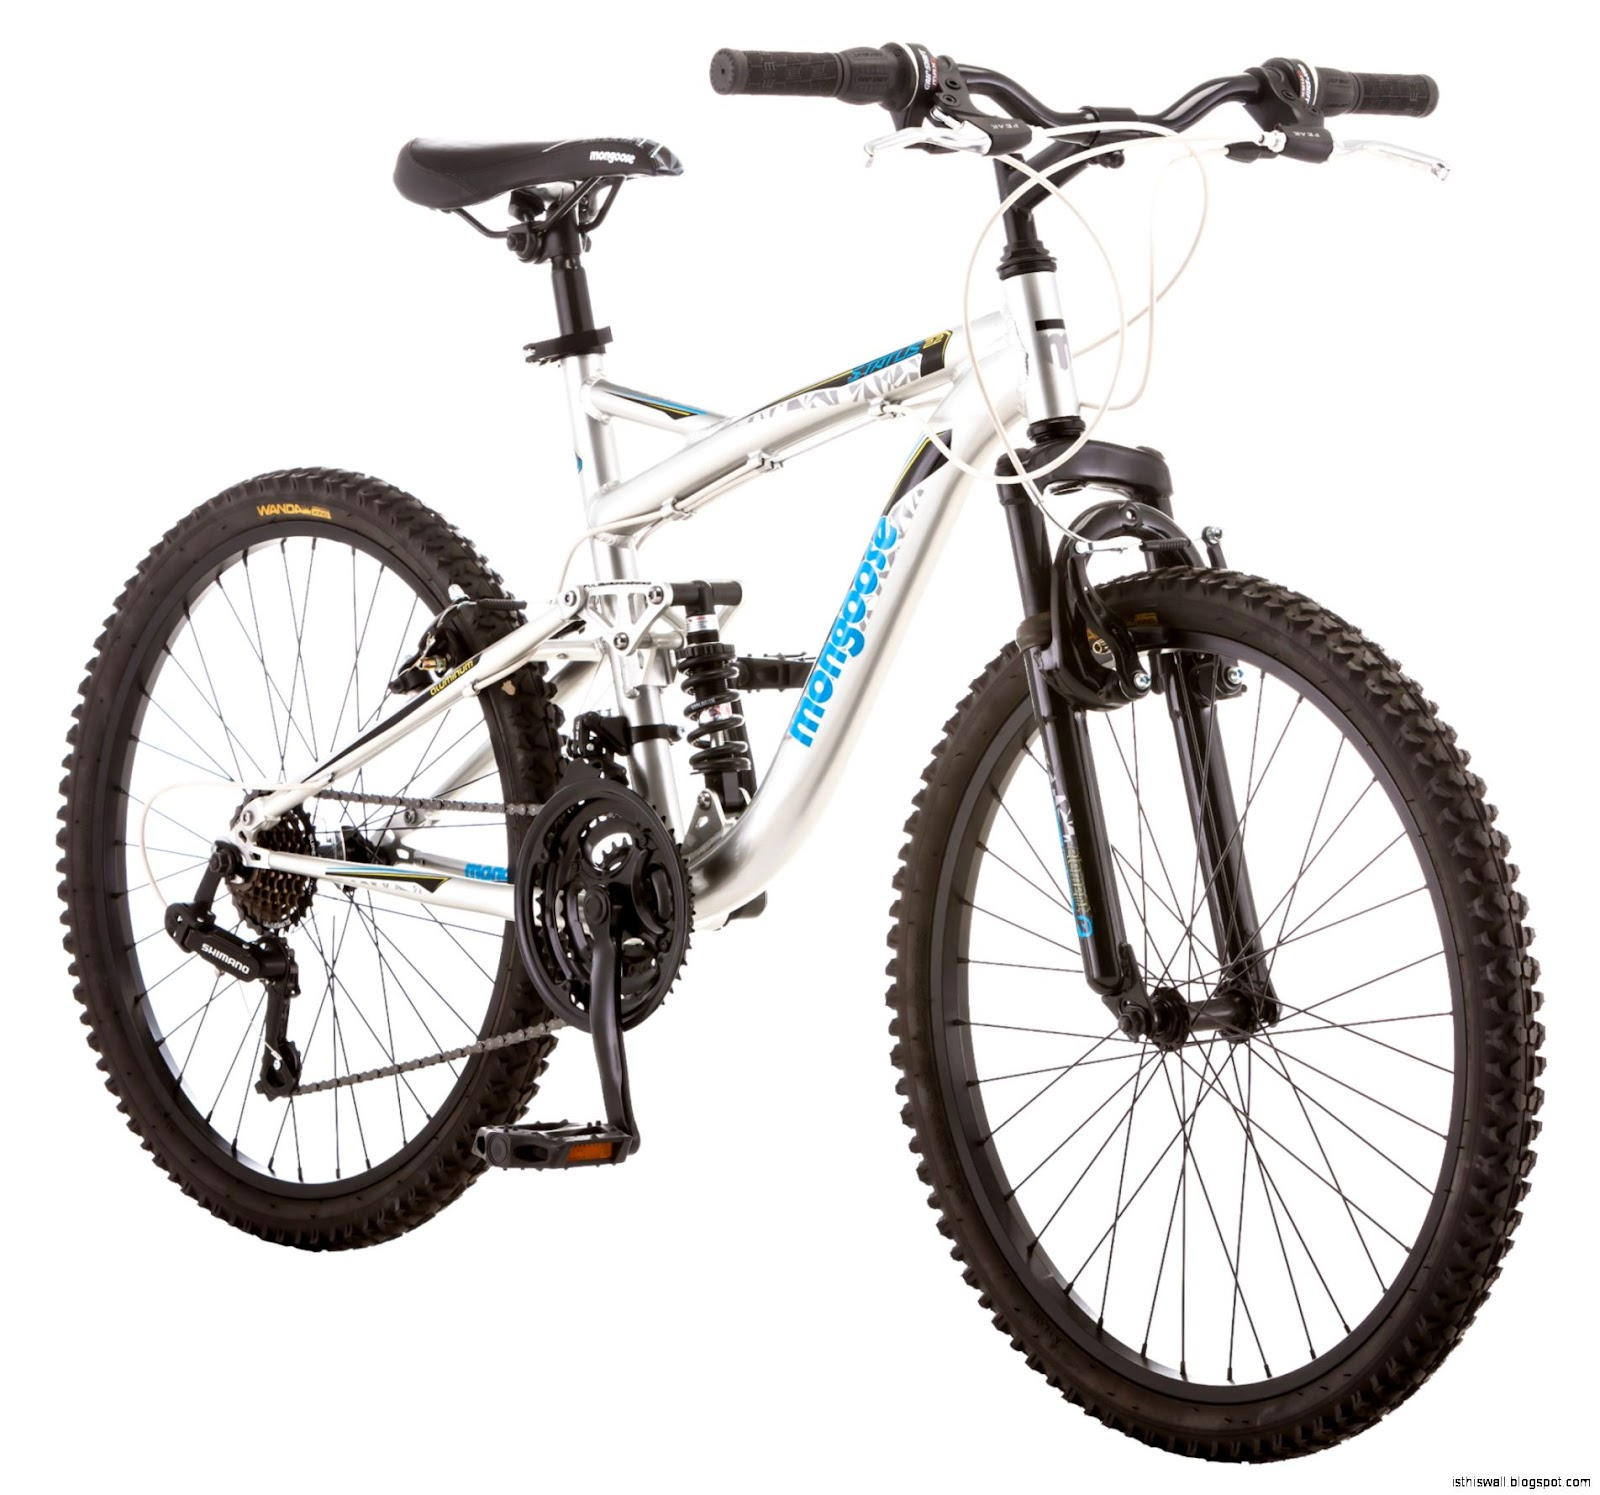 Home › Mongoose Status 22 Boys Suspension 21 Speed Mountain Bike